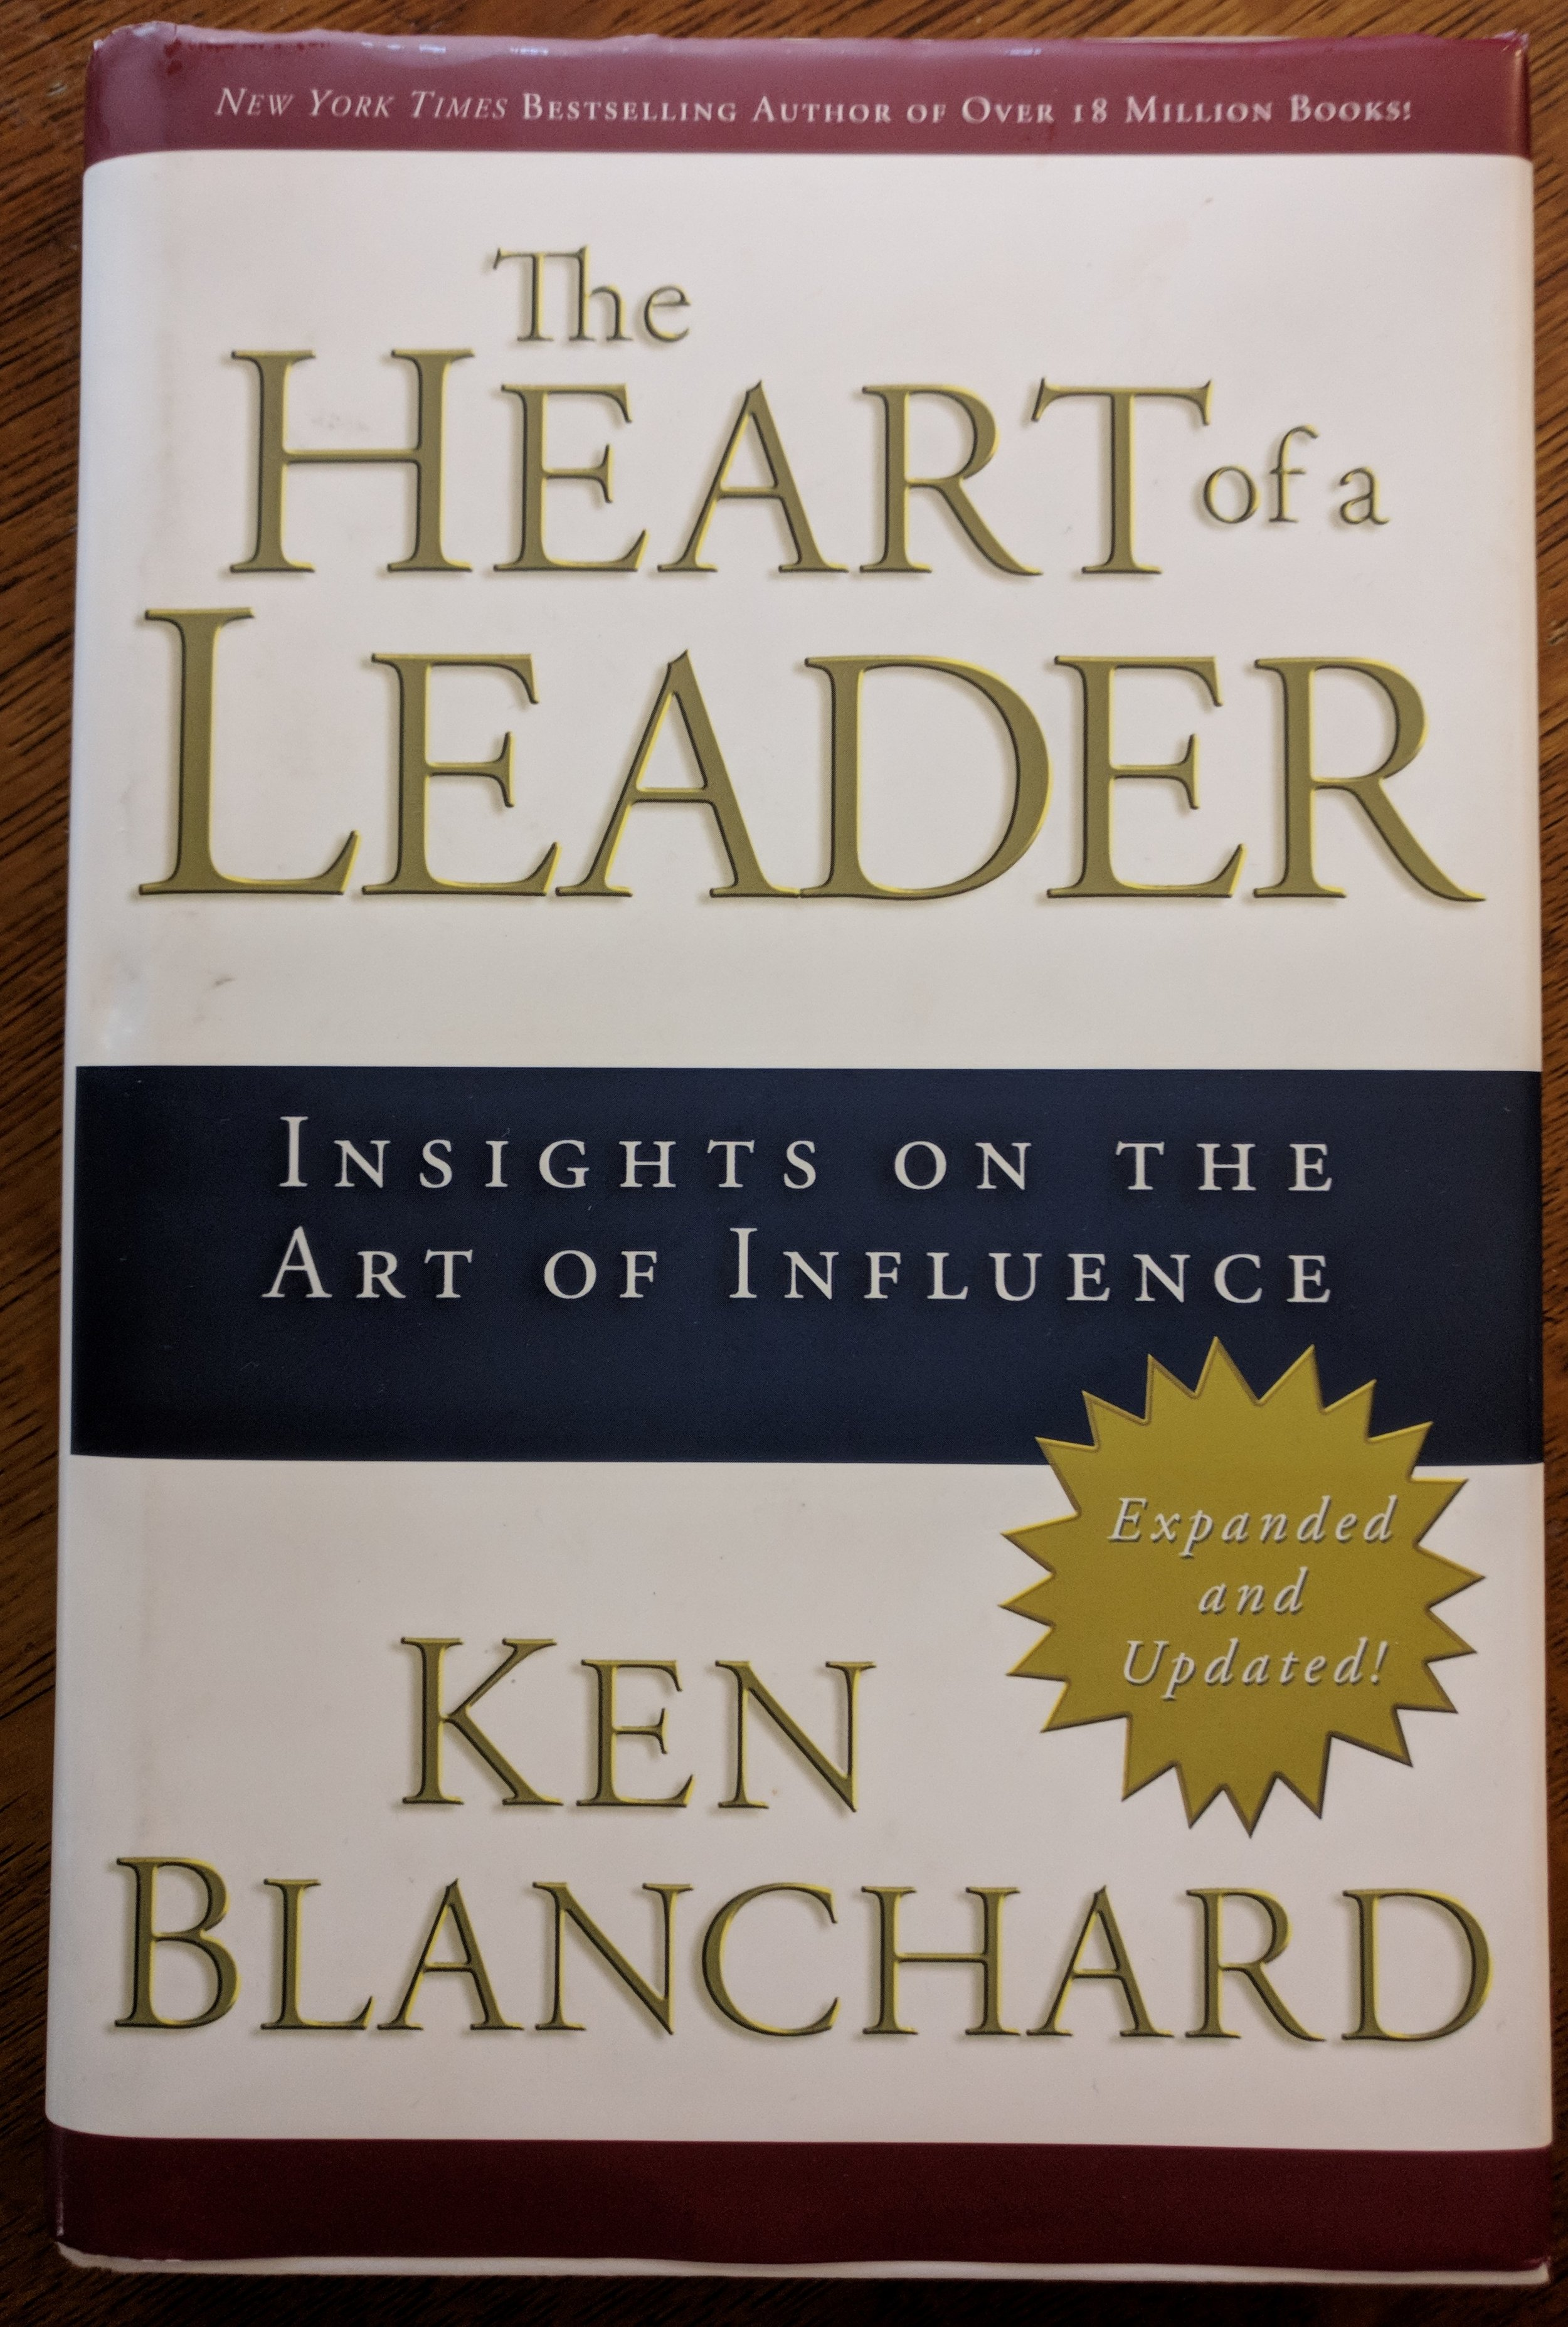 The Heart of a Leader  - Insights on the Art of Influence